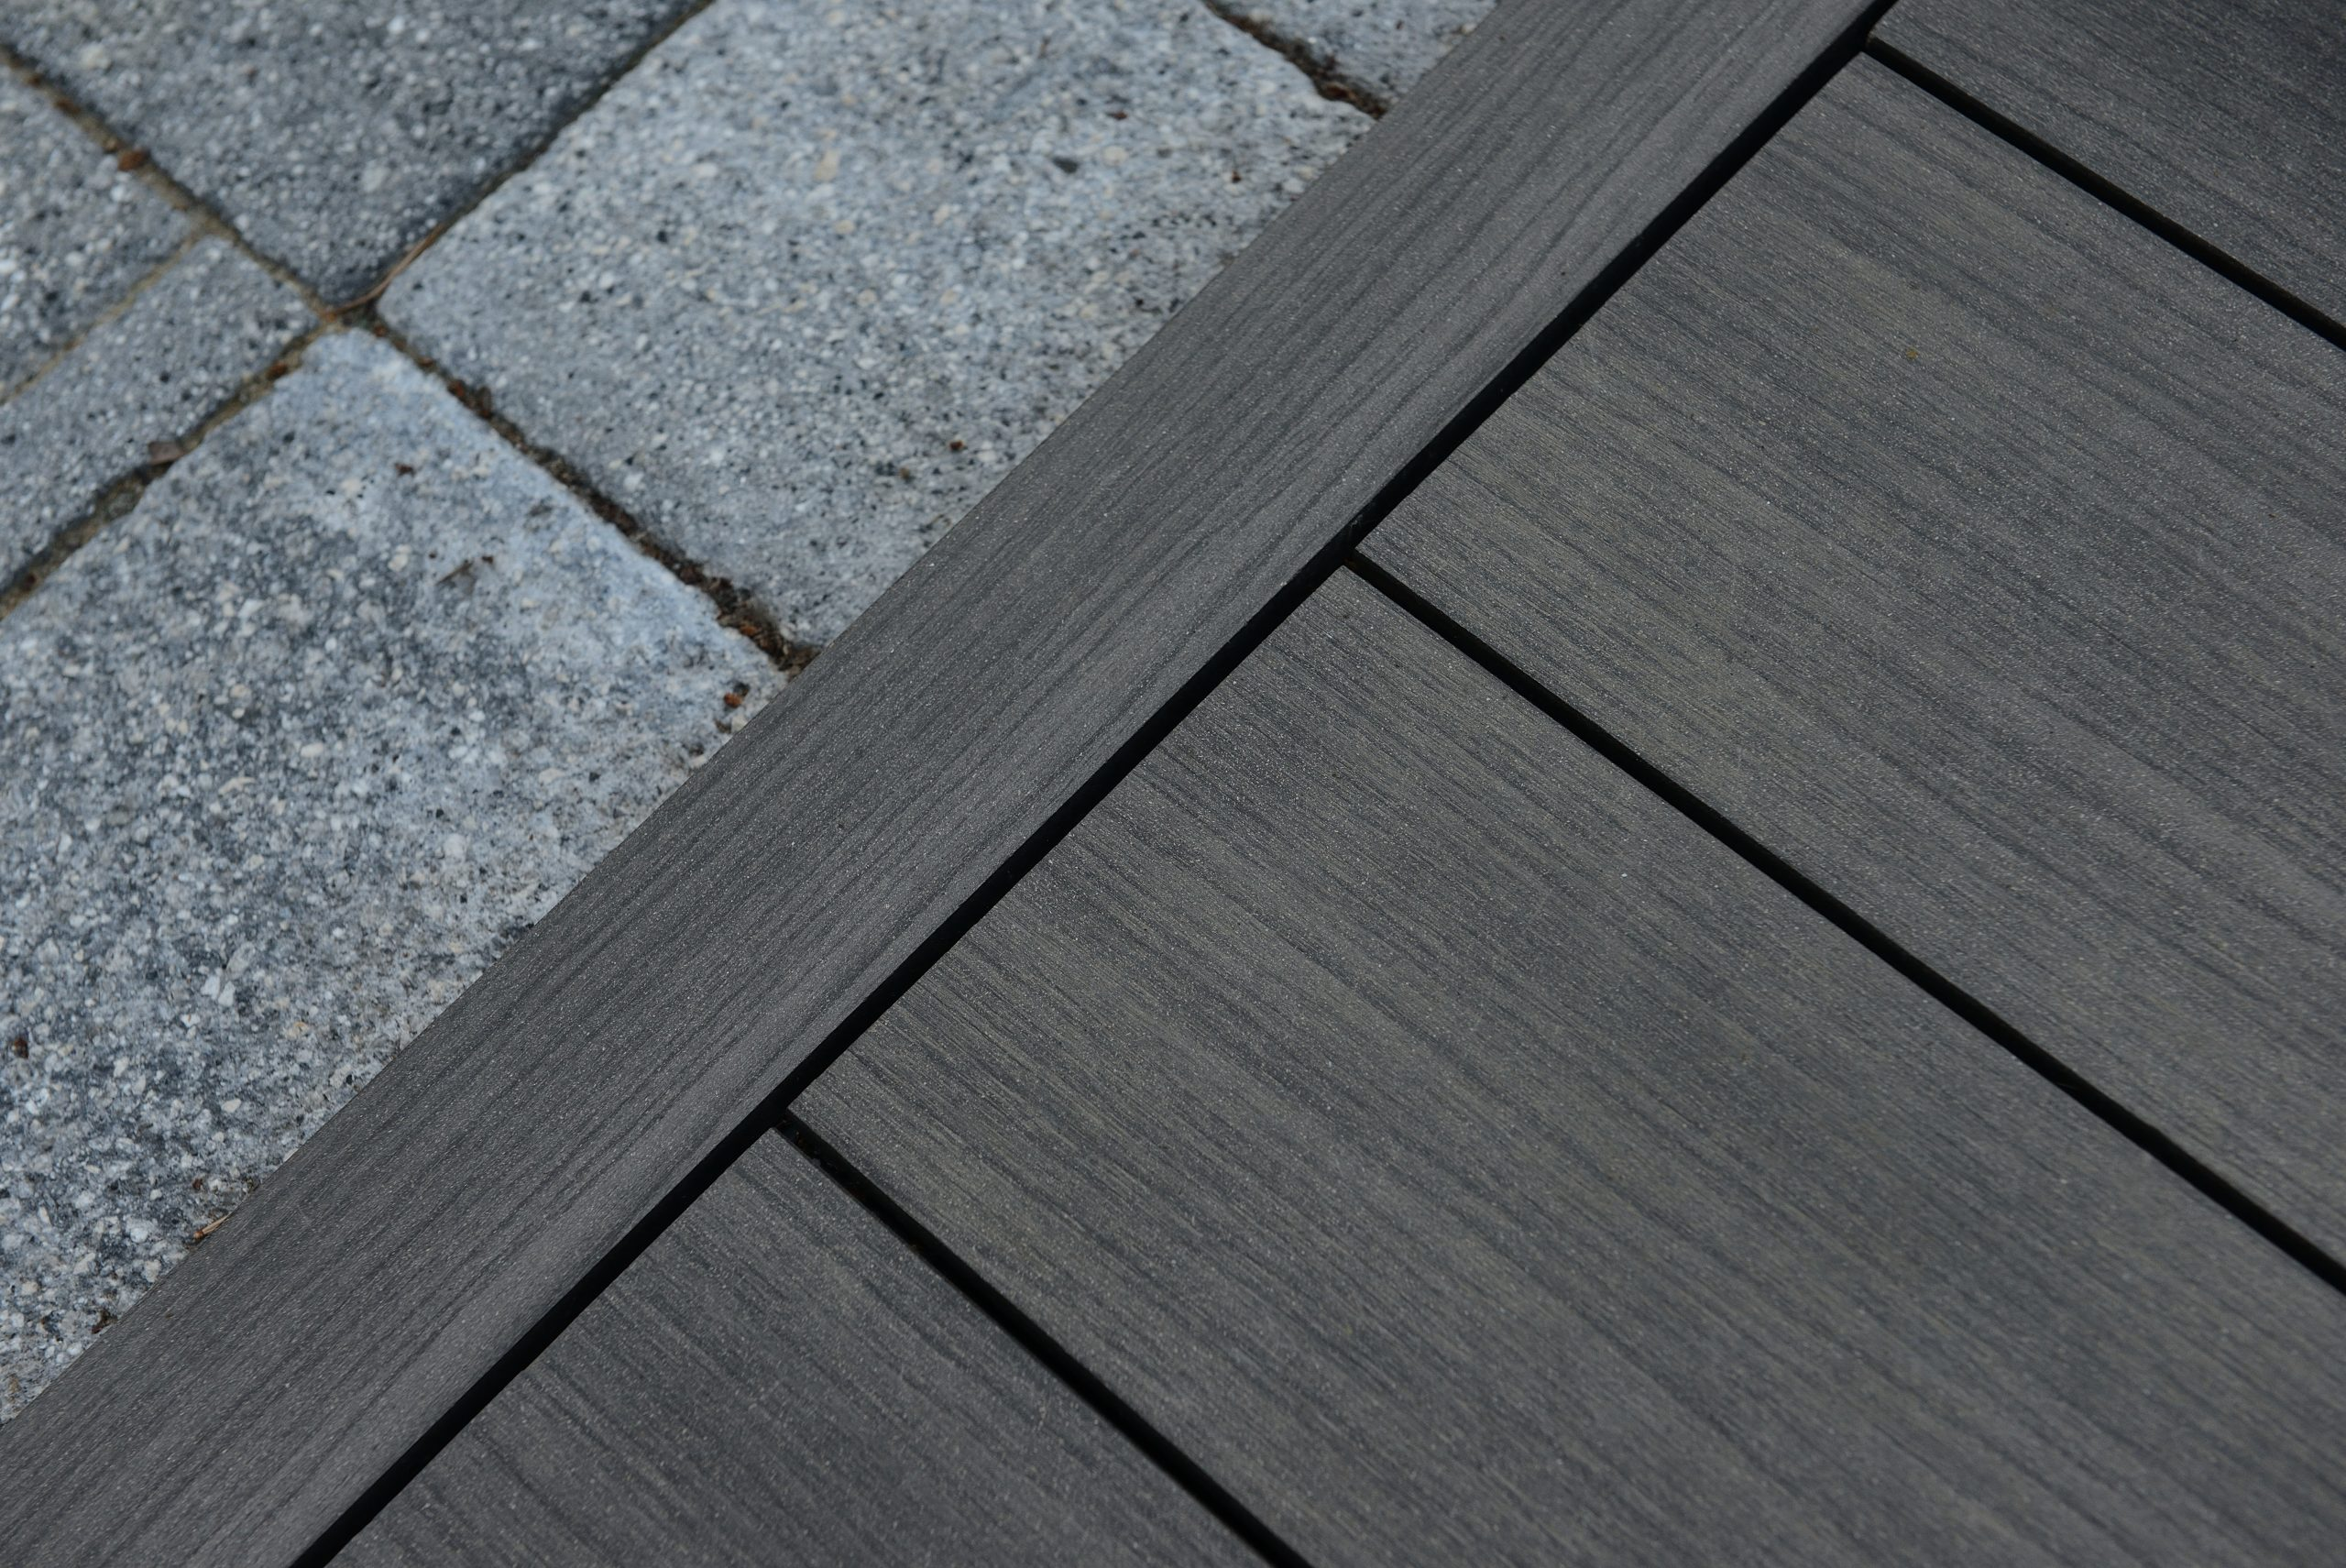 composite decking Moor Oak decking step profile